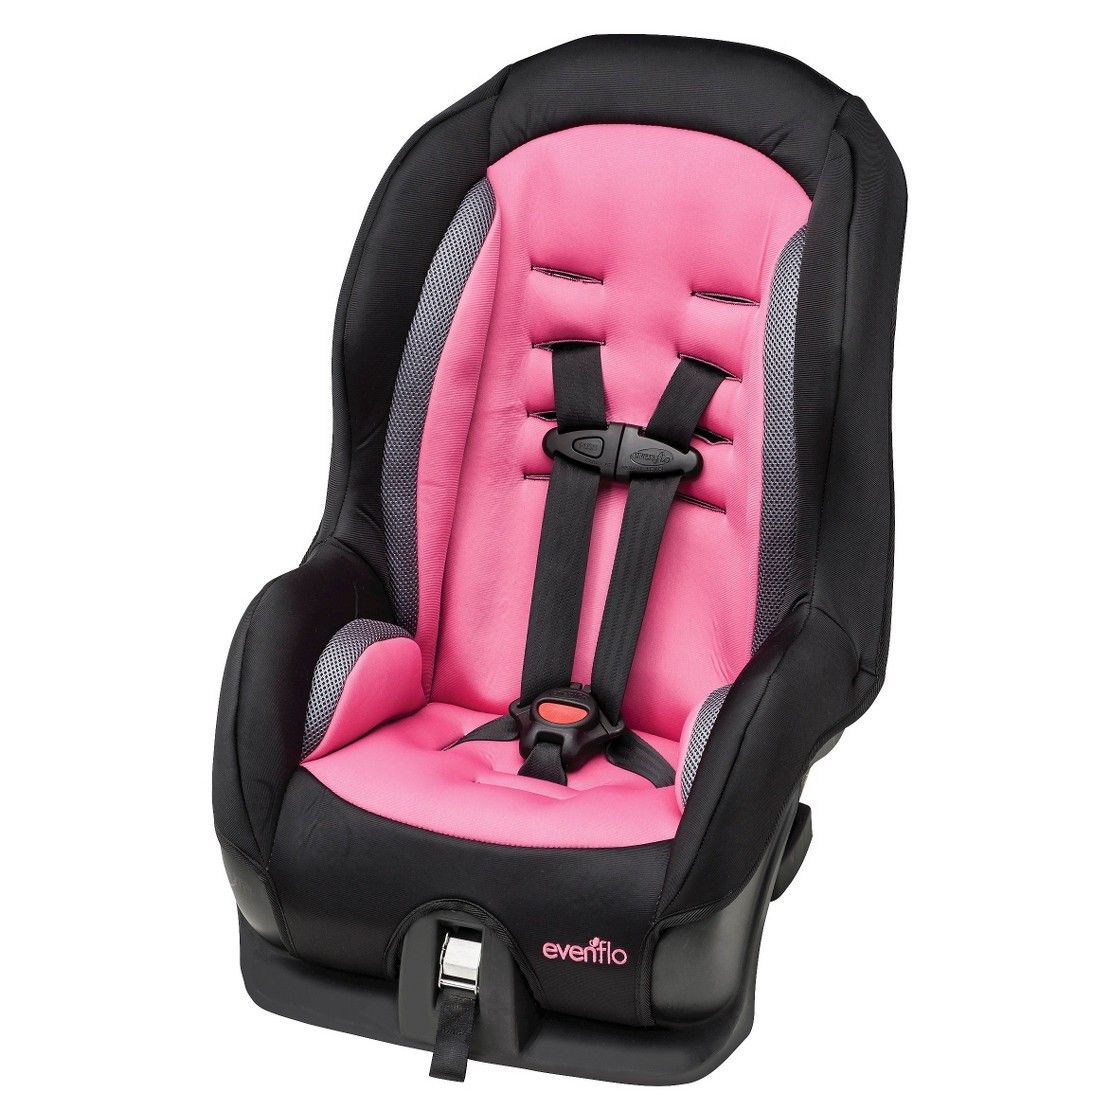 Evenflo Vive Travel System with Embrace